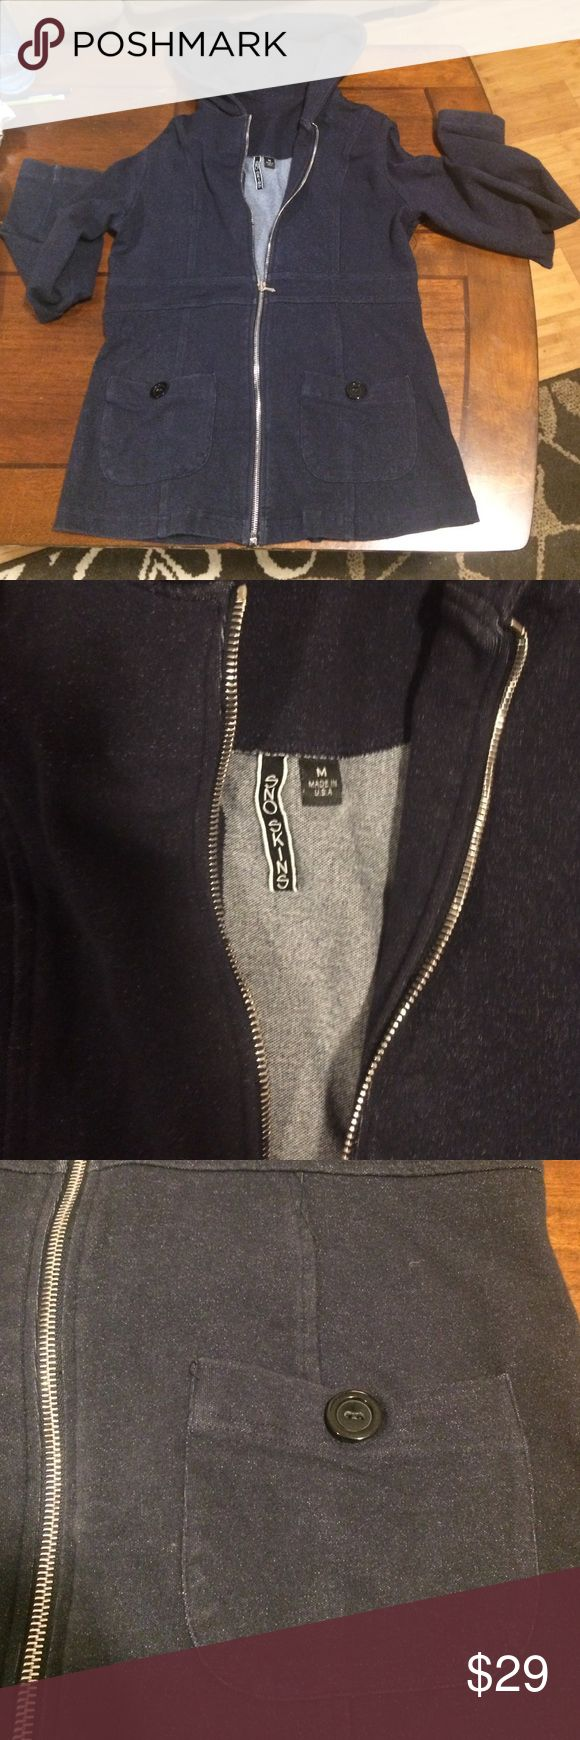 MED NWOT SnoSkins Navy Hoody. Silver zip up!!! Great fit and perfect condition. Lightweight and with the two center pockets and the way the back looks it's a very unique hoody!! Deep navy blue!! Sno Skins MEDIUM NWOT Sno Skins Tops Sweatshirts & Hoodies